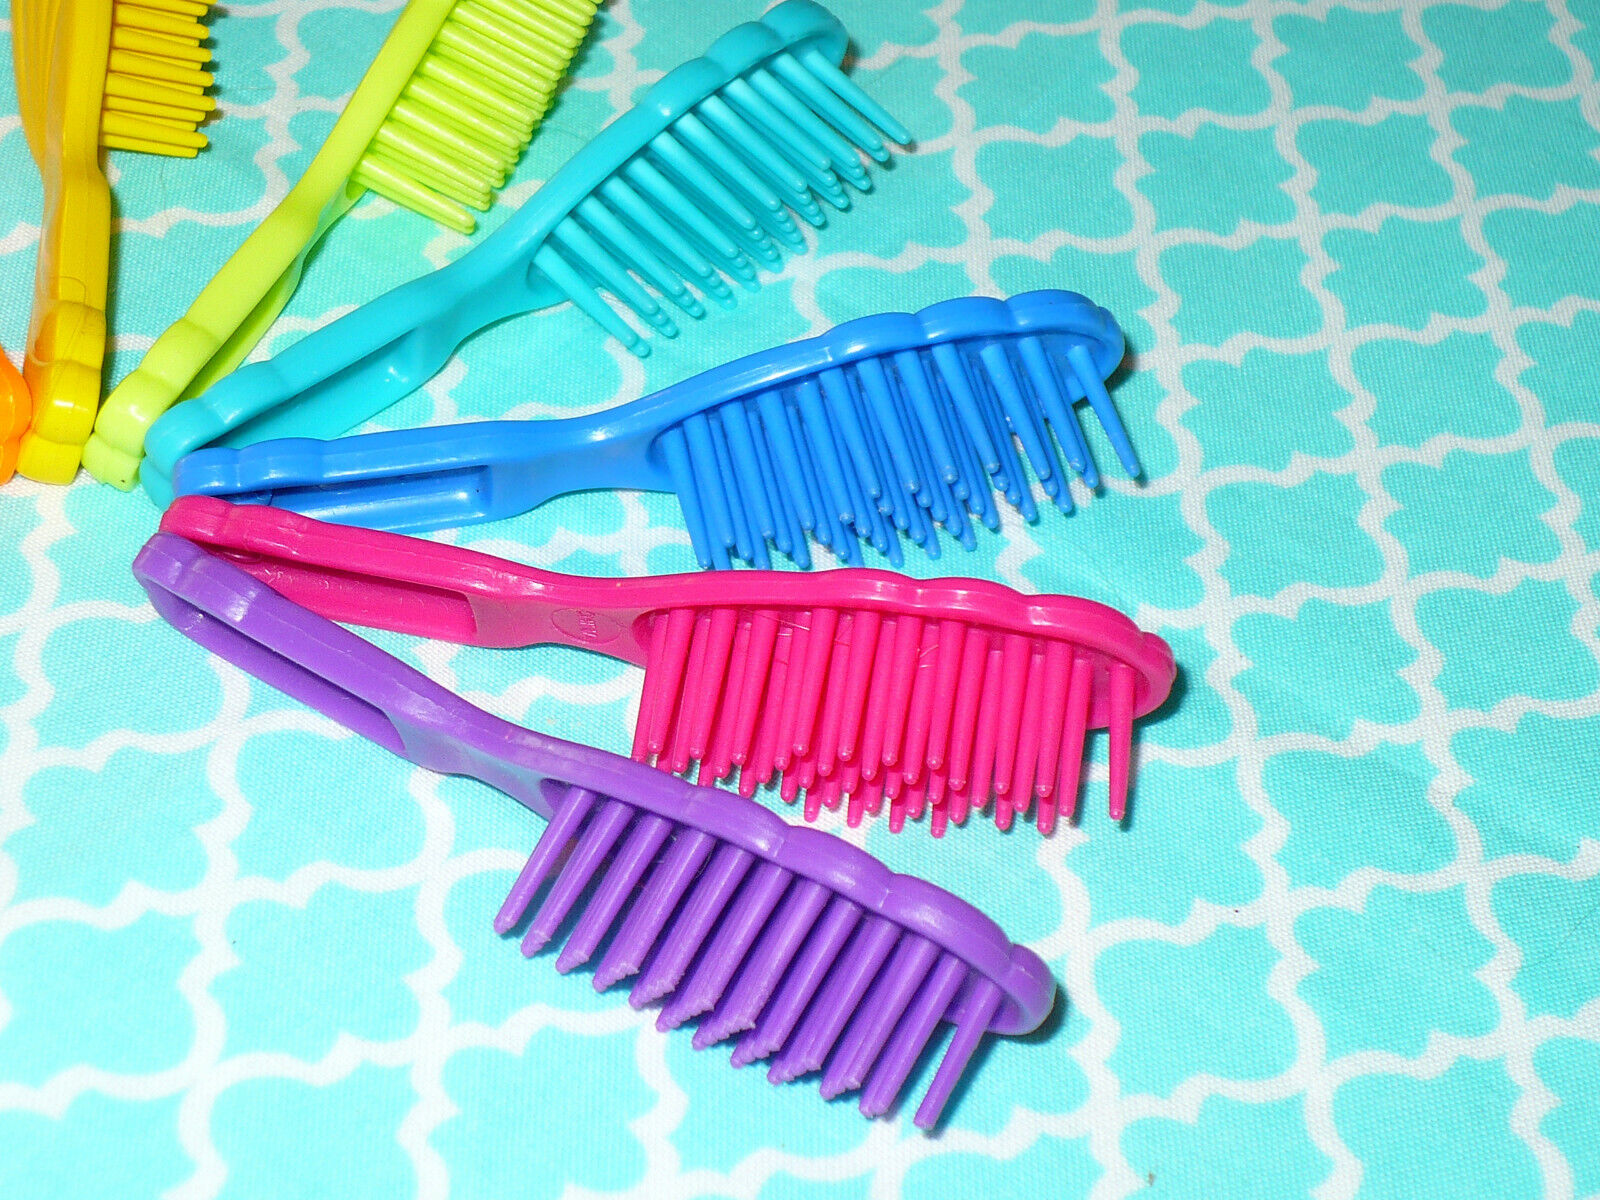 Mattel Barbie Doll Accessory Lot Of 8 VINTAGE 80 s 90 s HAIRBRUSHES Hair Brushes - $11.99